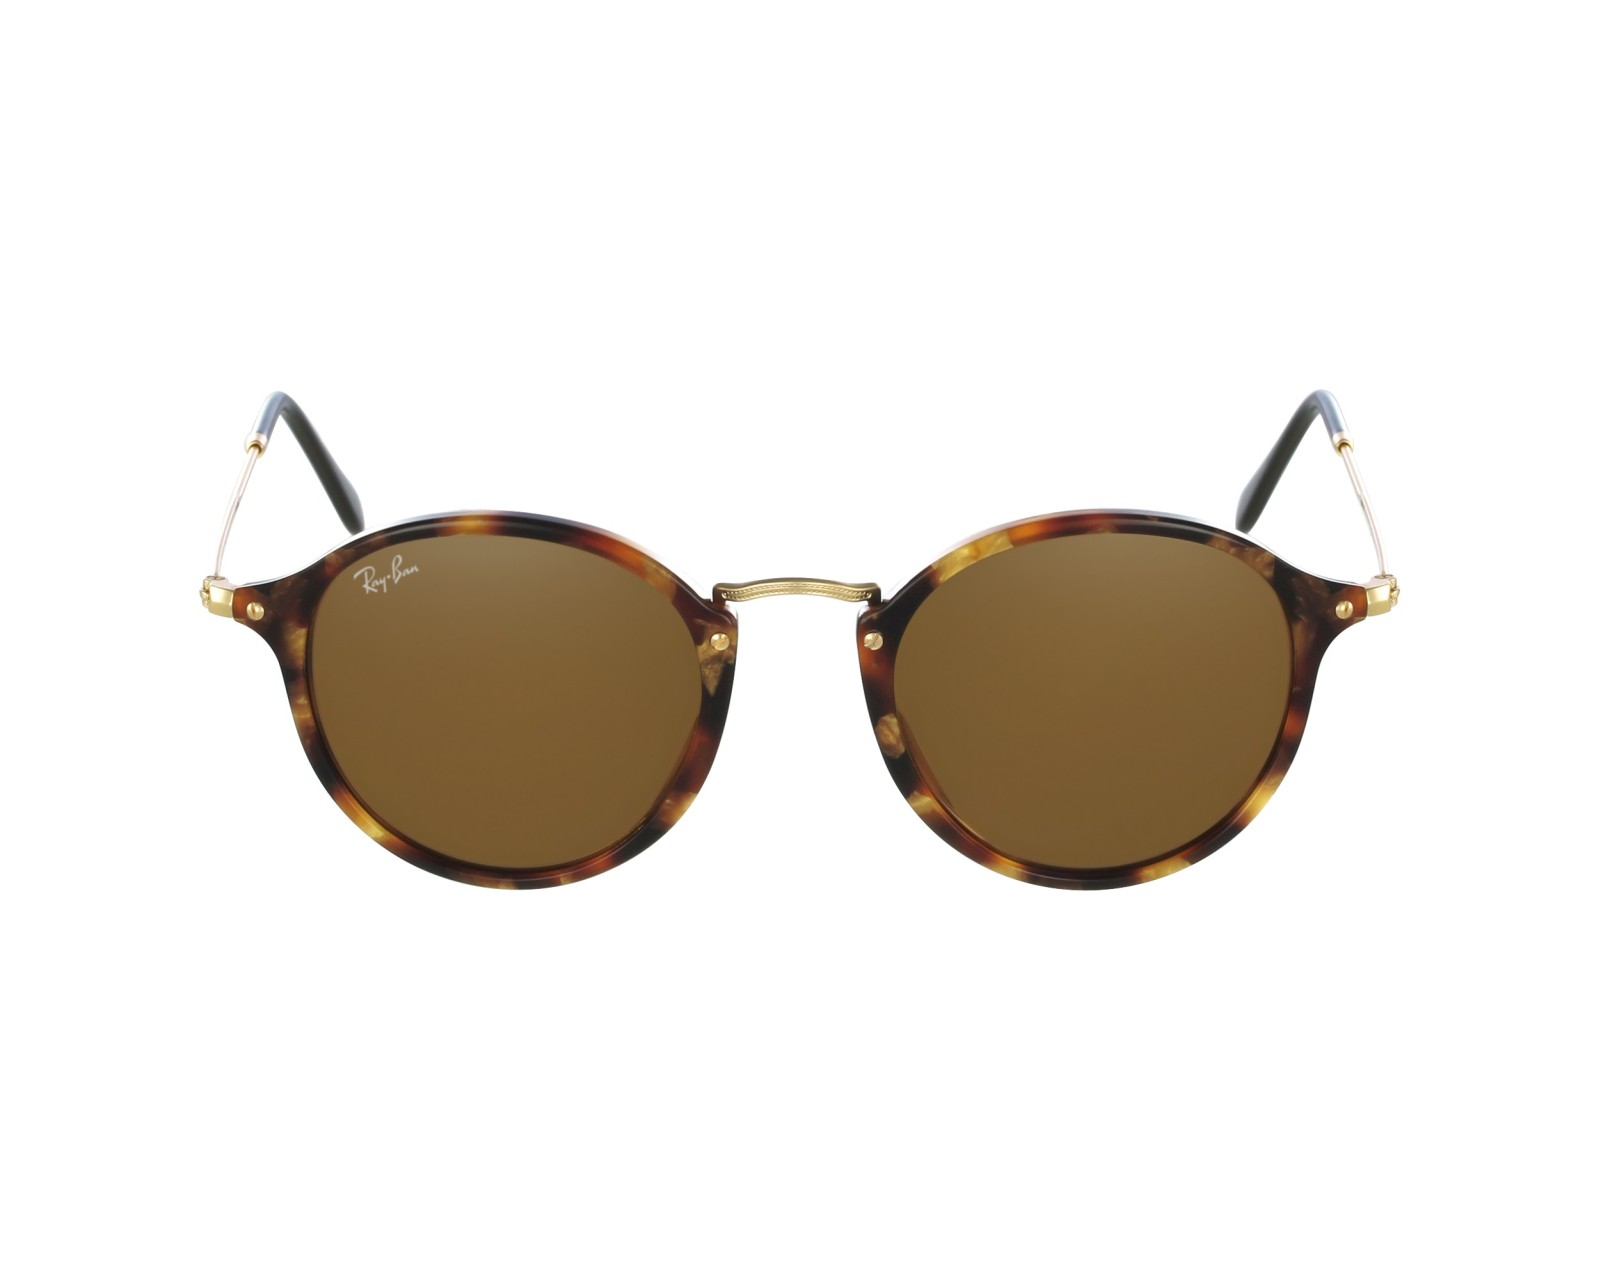 fcce535732 Sunglasses Ray-Ban RB-2447 1160 49-21 Brown Gold profile view